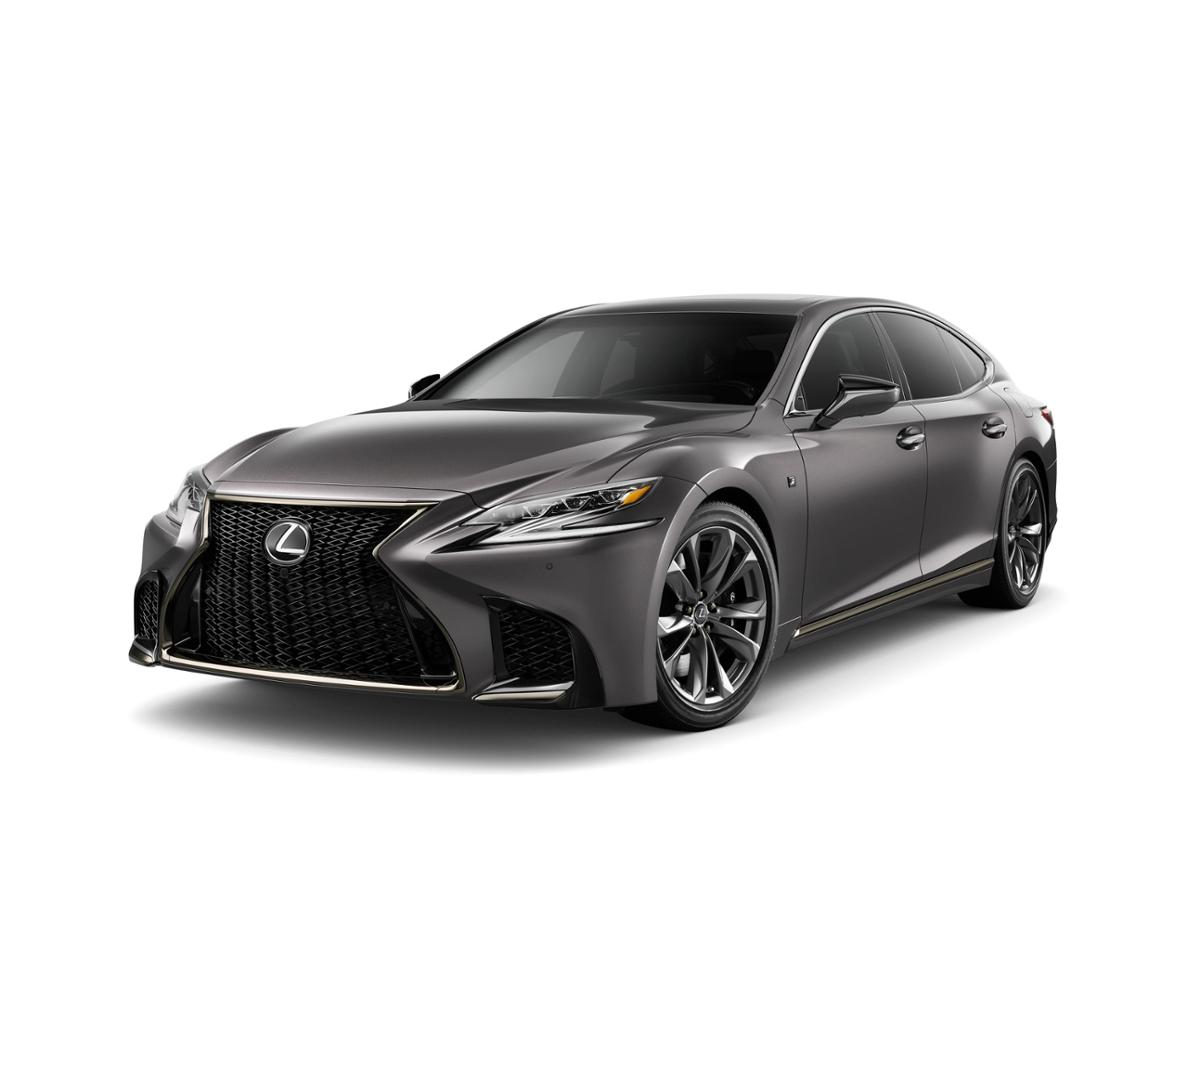 2018 Lexus LS 500 Vehicle Photo in Modesto, CA 95356